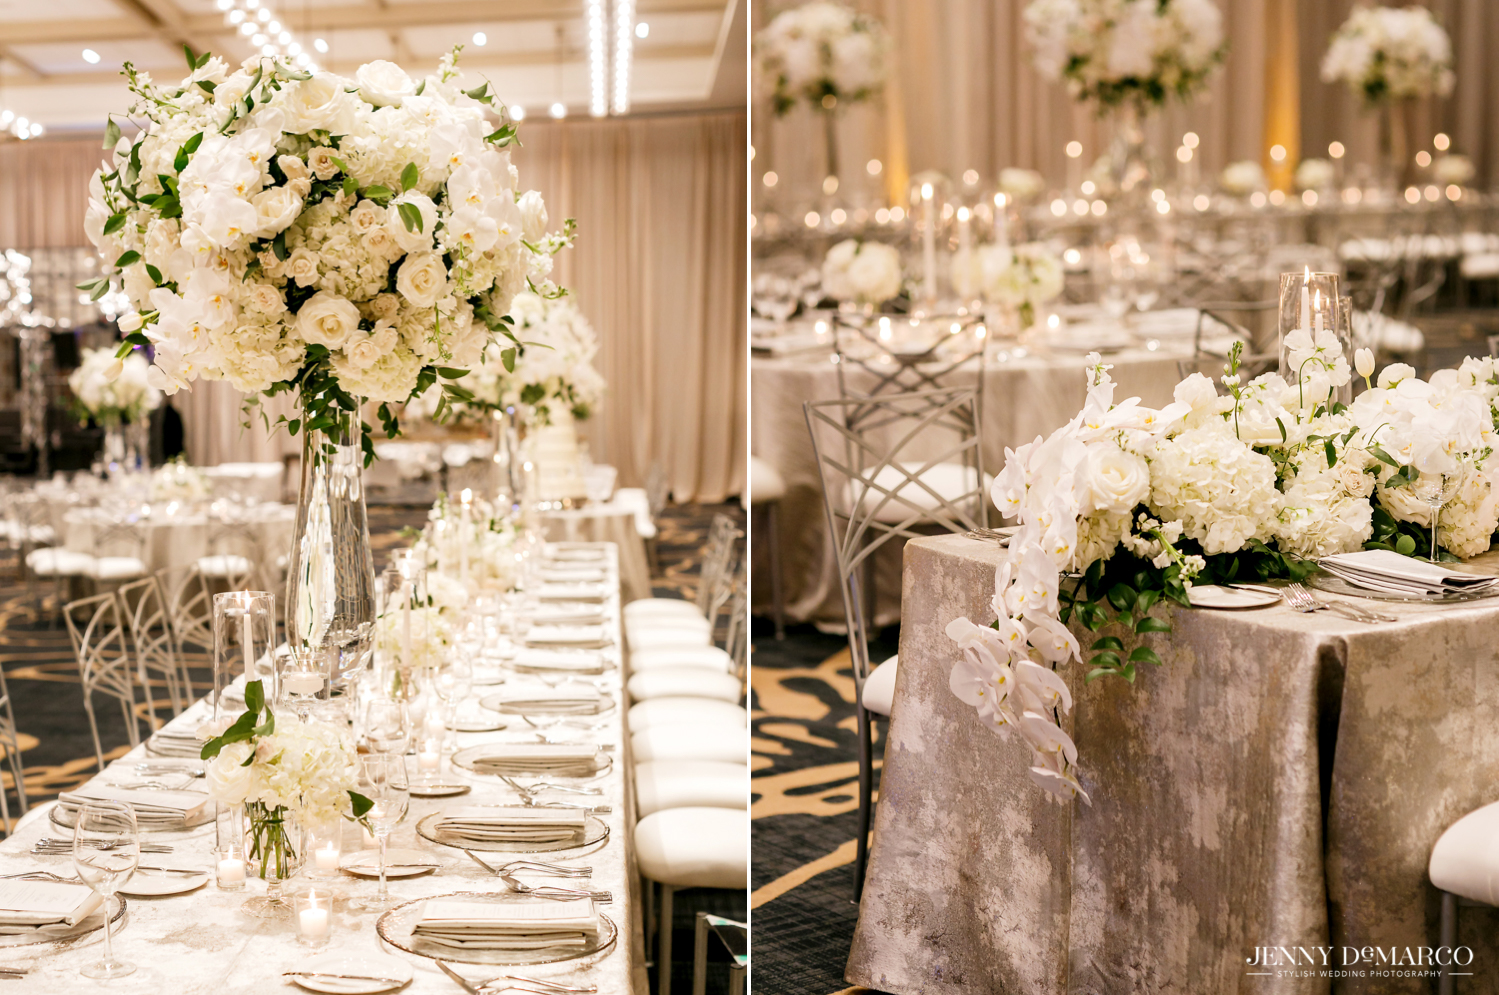 reception dinner table settings with beautiful white flower bouquets